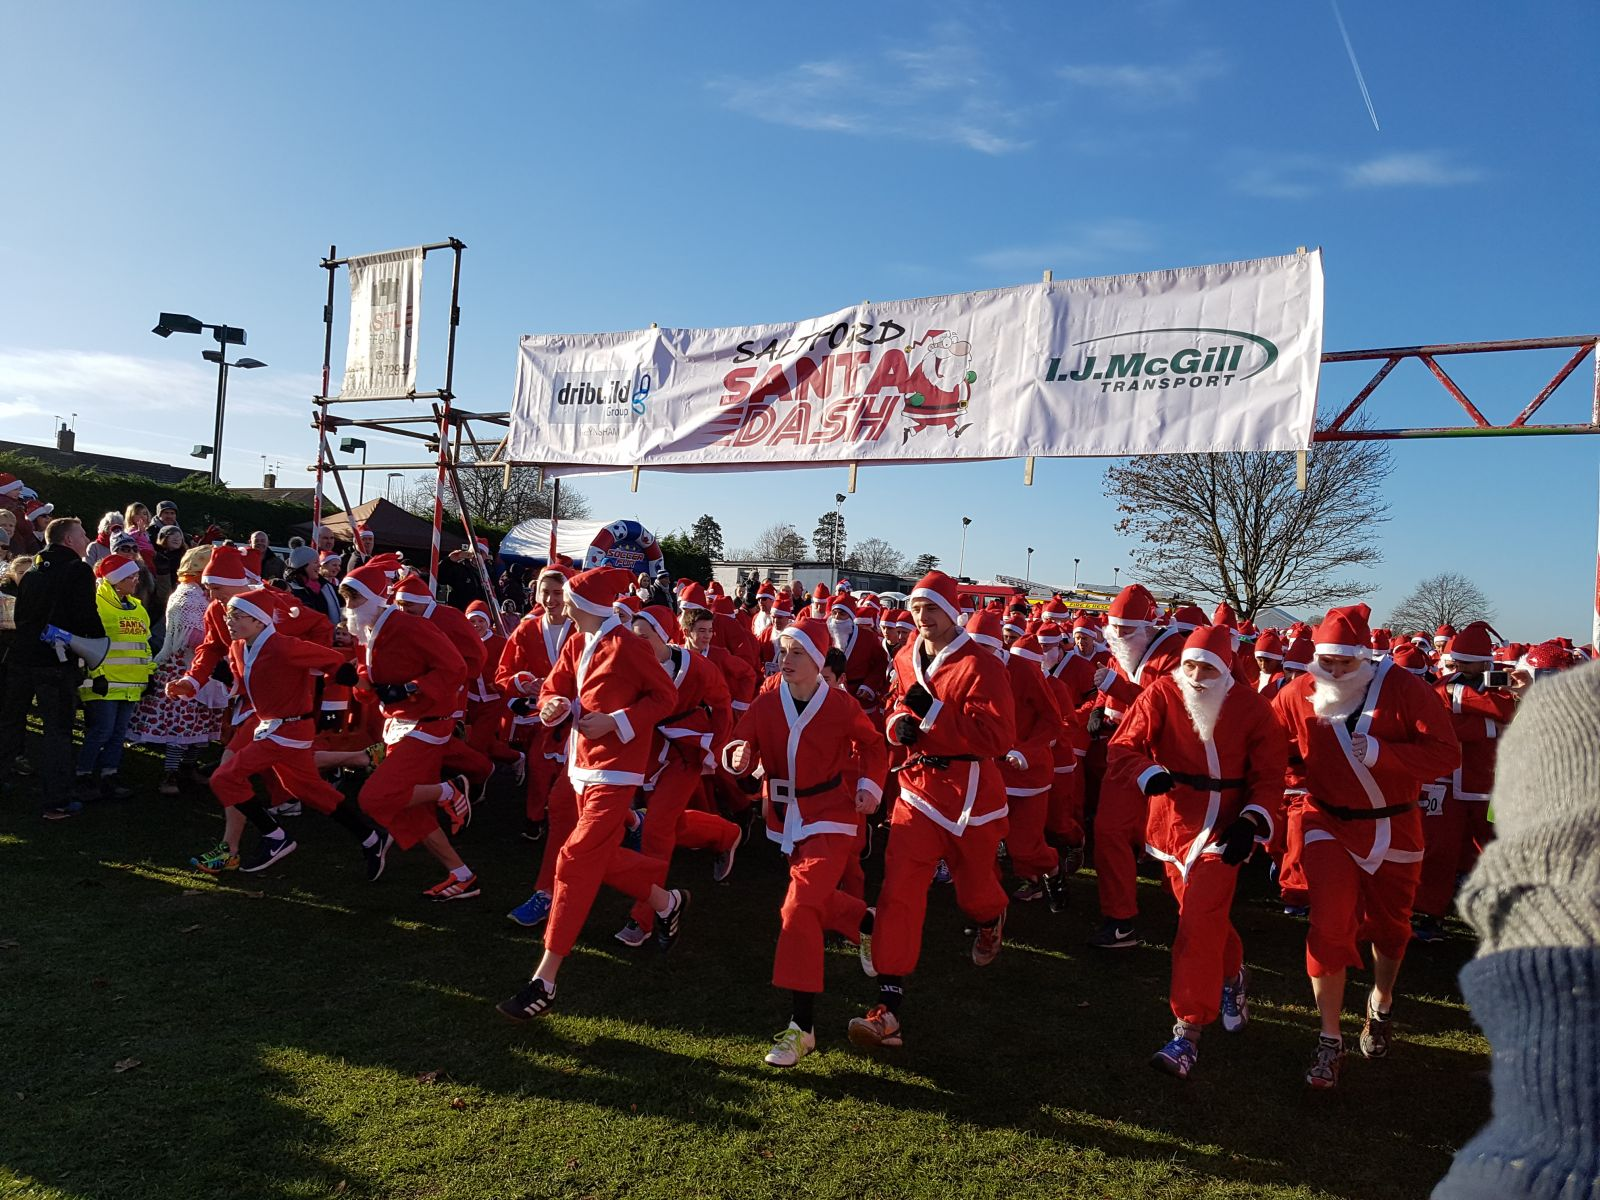 large goup of people all dressed as Santa Claus